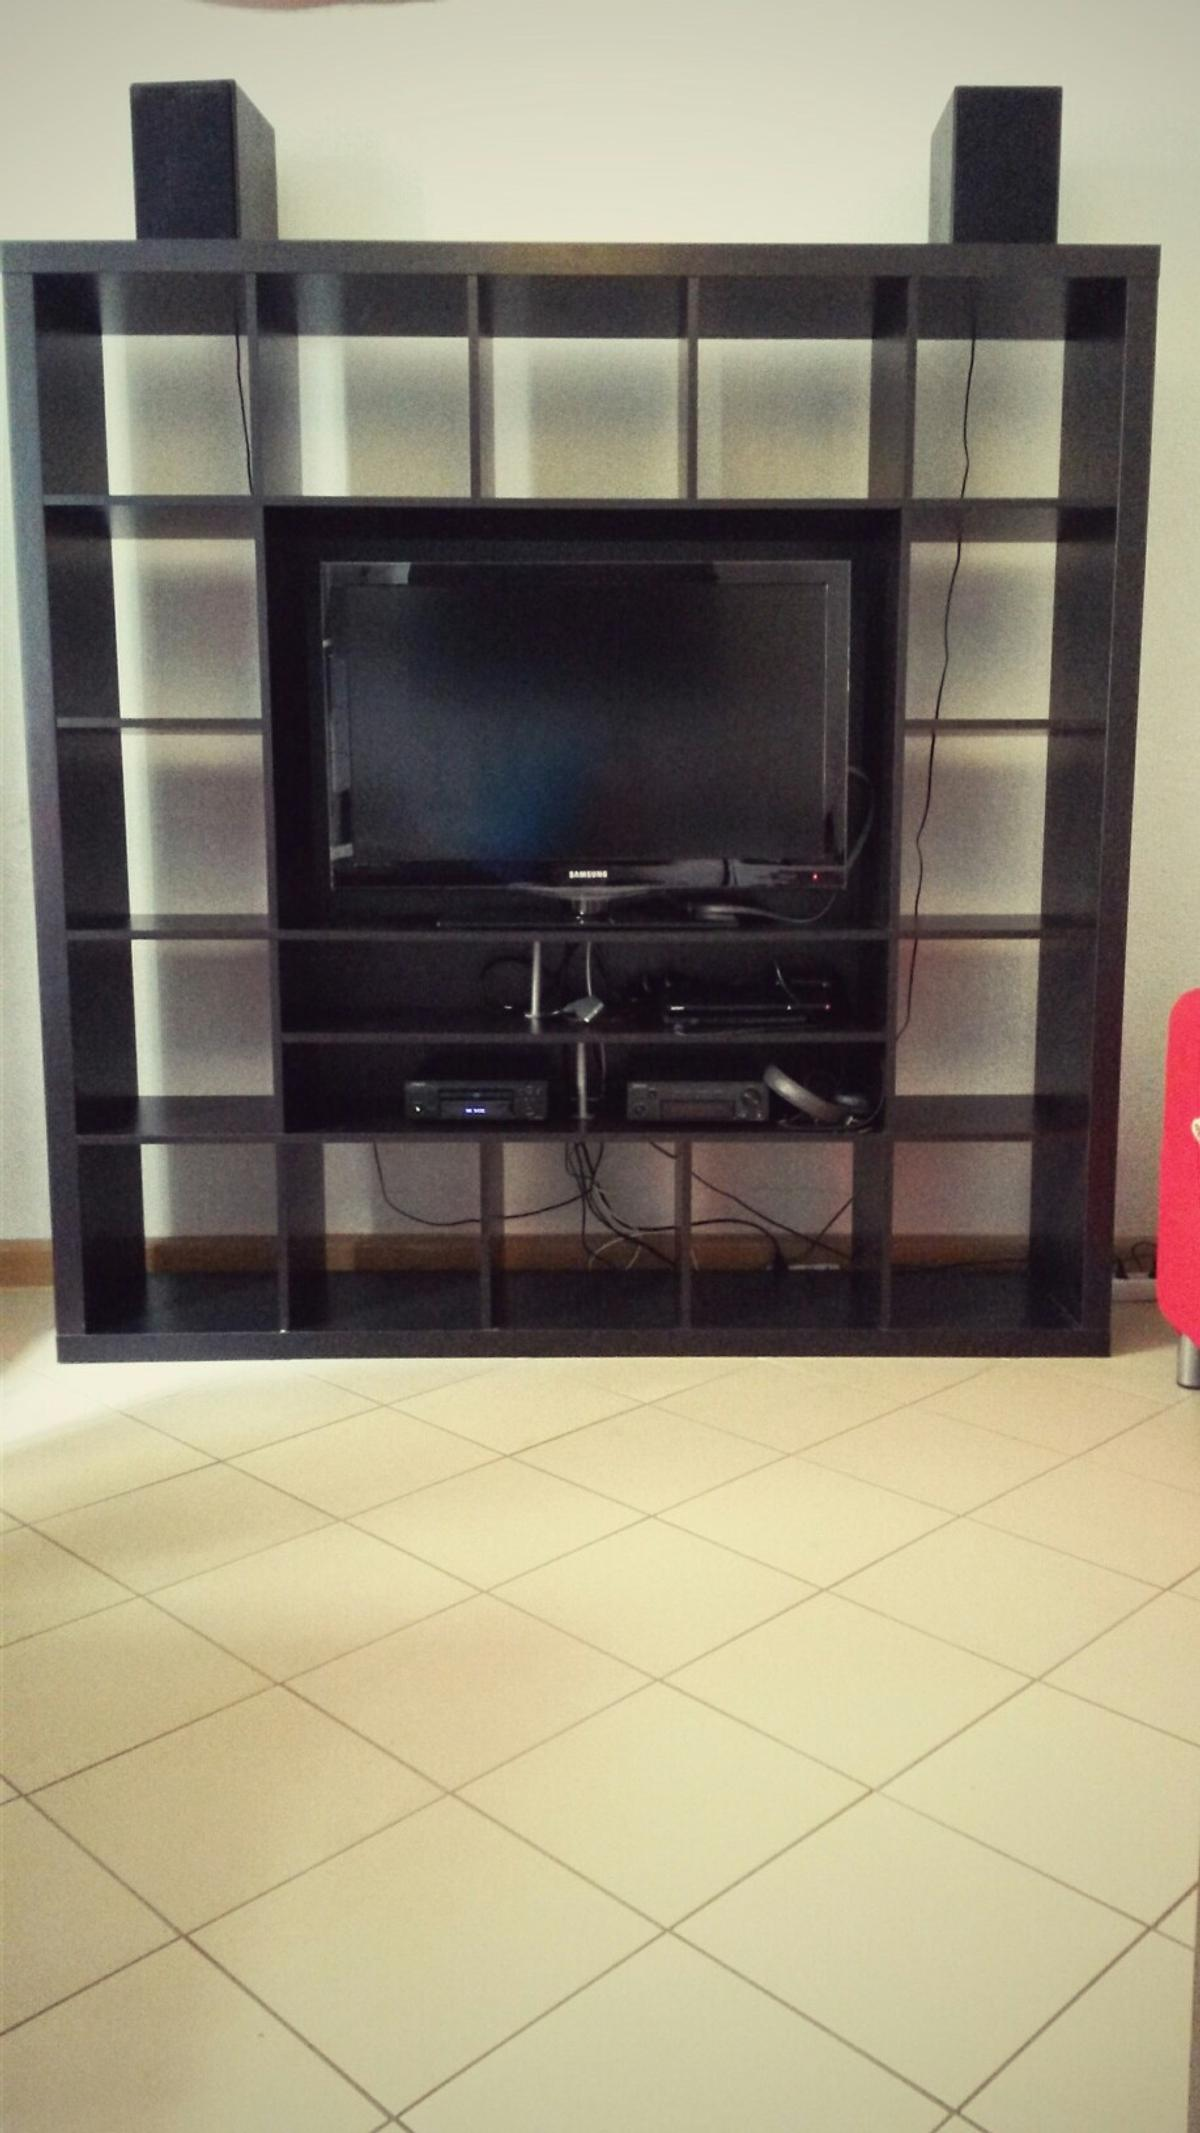 Ikea Expedit Jetzt Kallax Tv Regal 5x5 In 80339 München For 65 00 For Sale Shpock - Fernseher Regal